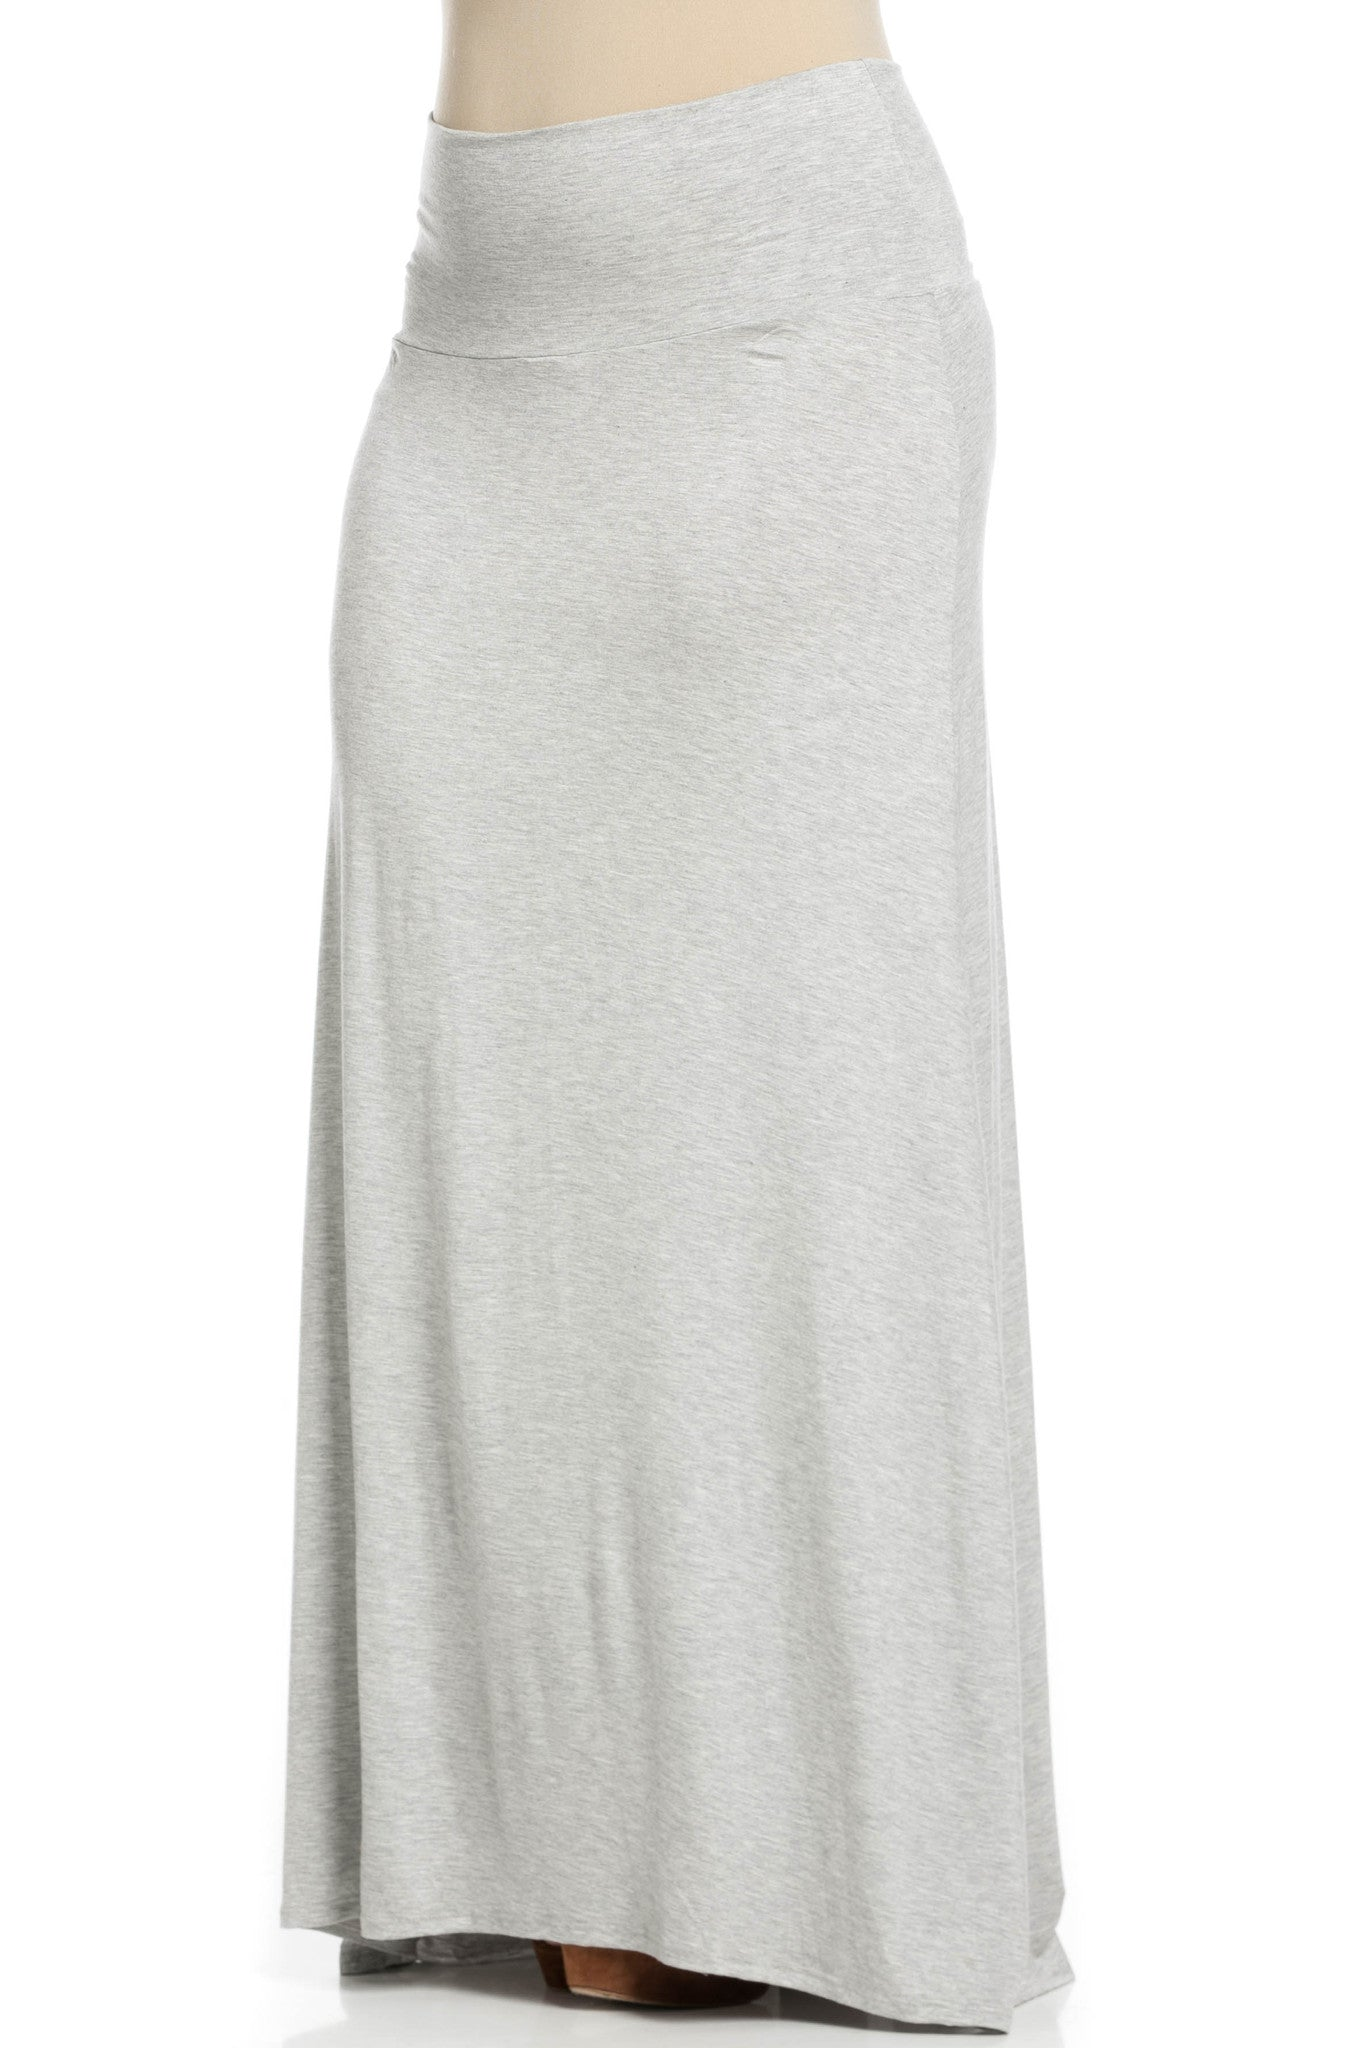 Fold Over Two-Way Maxi Skirt Heather Grey - Skirts - My Yuccie - 10